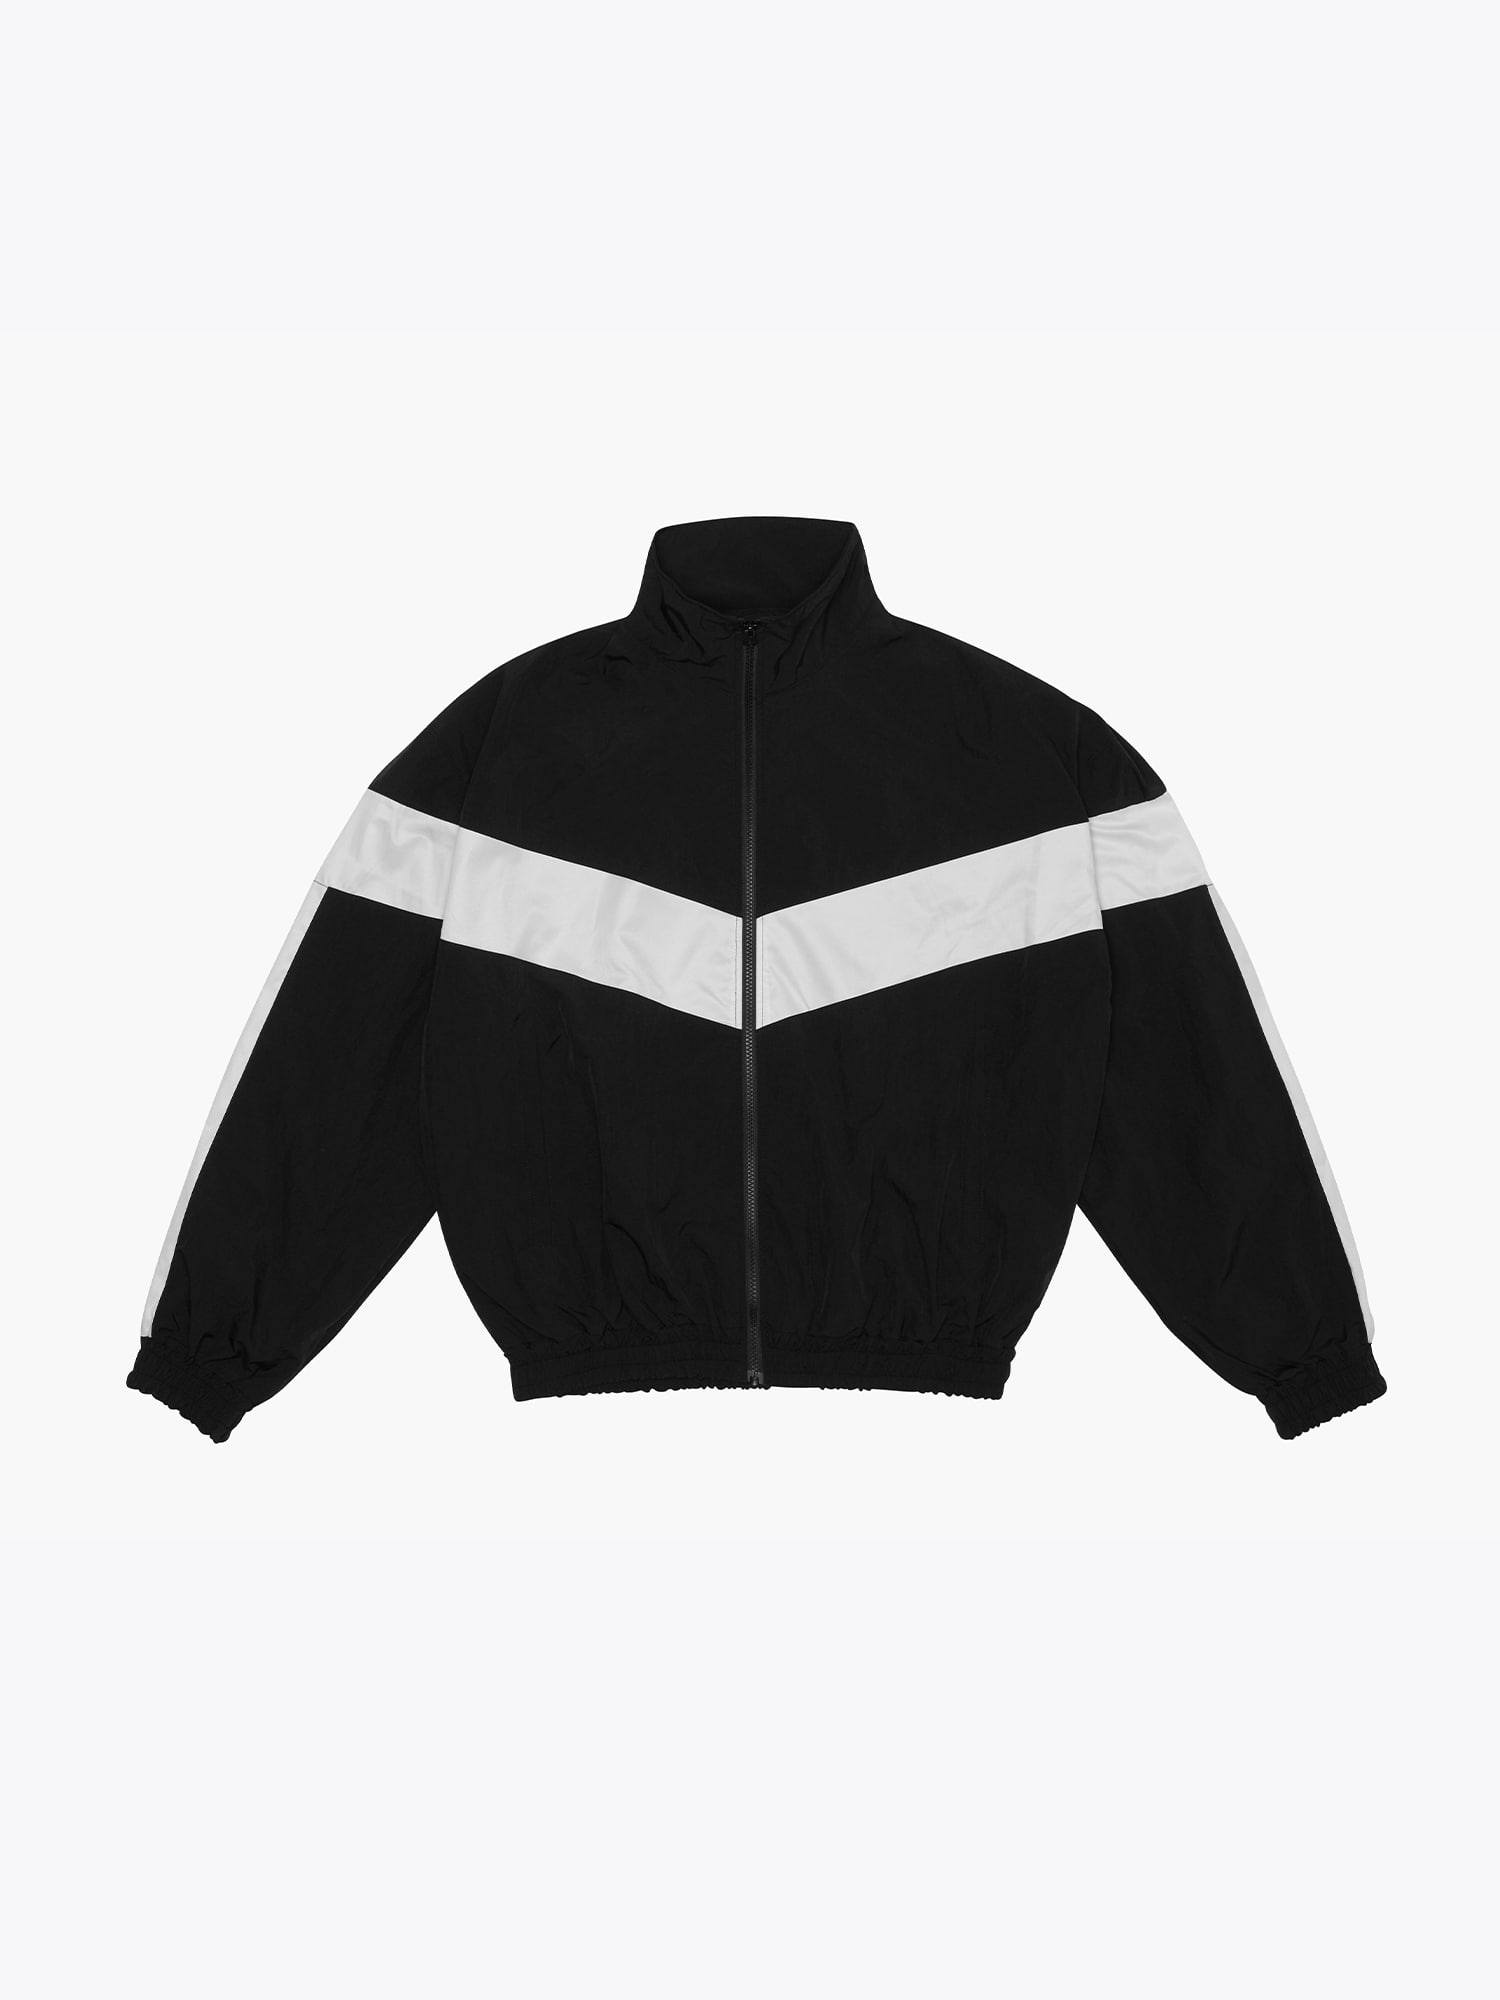 Contrast Track Jacket Black/white